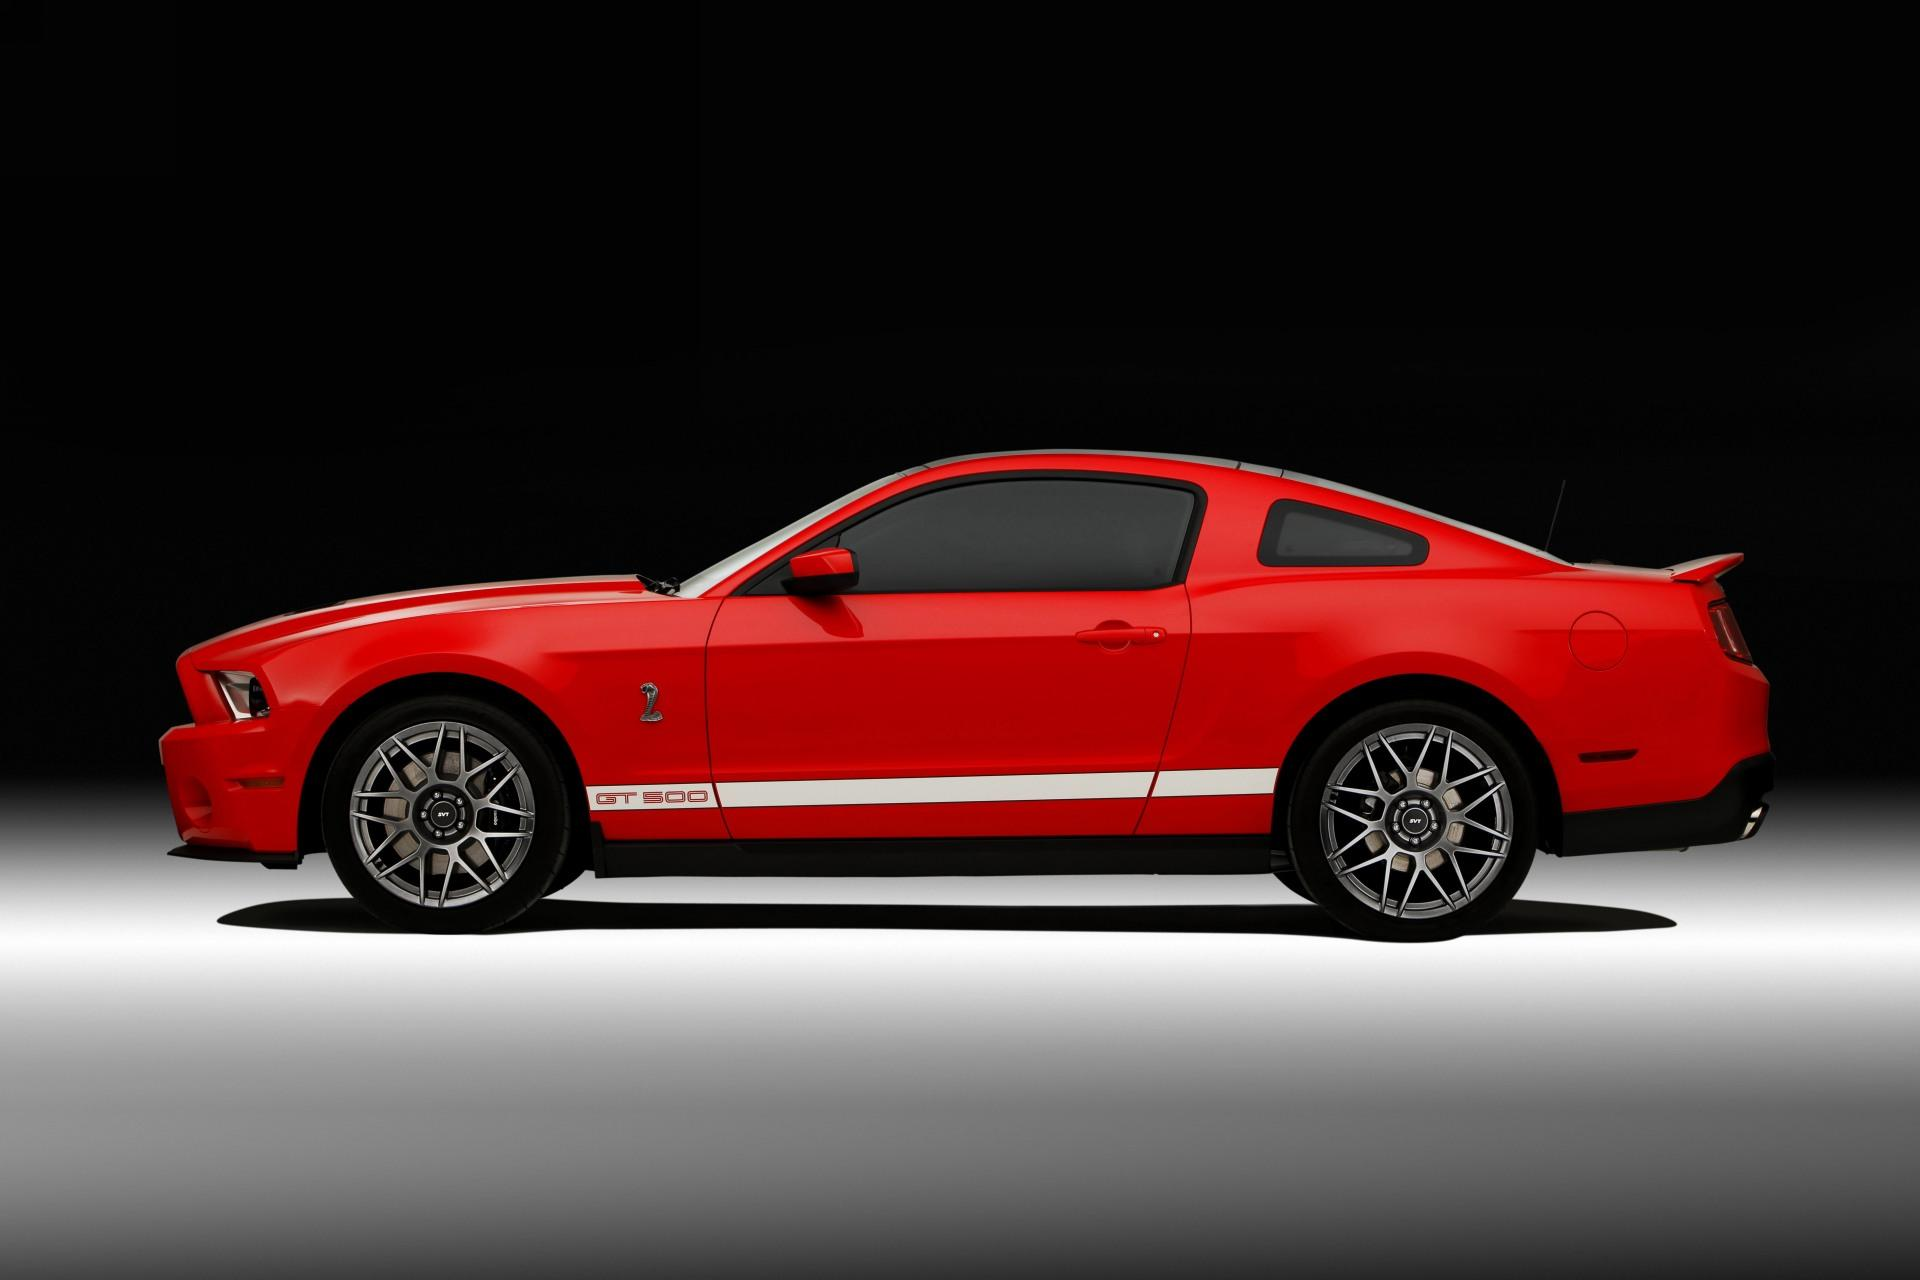 2011 Shelby GT500 Mustang News and Information